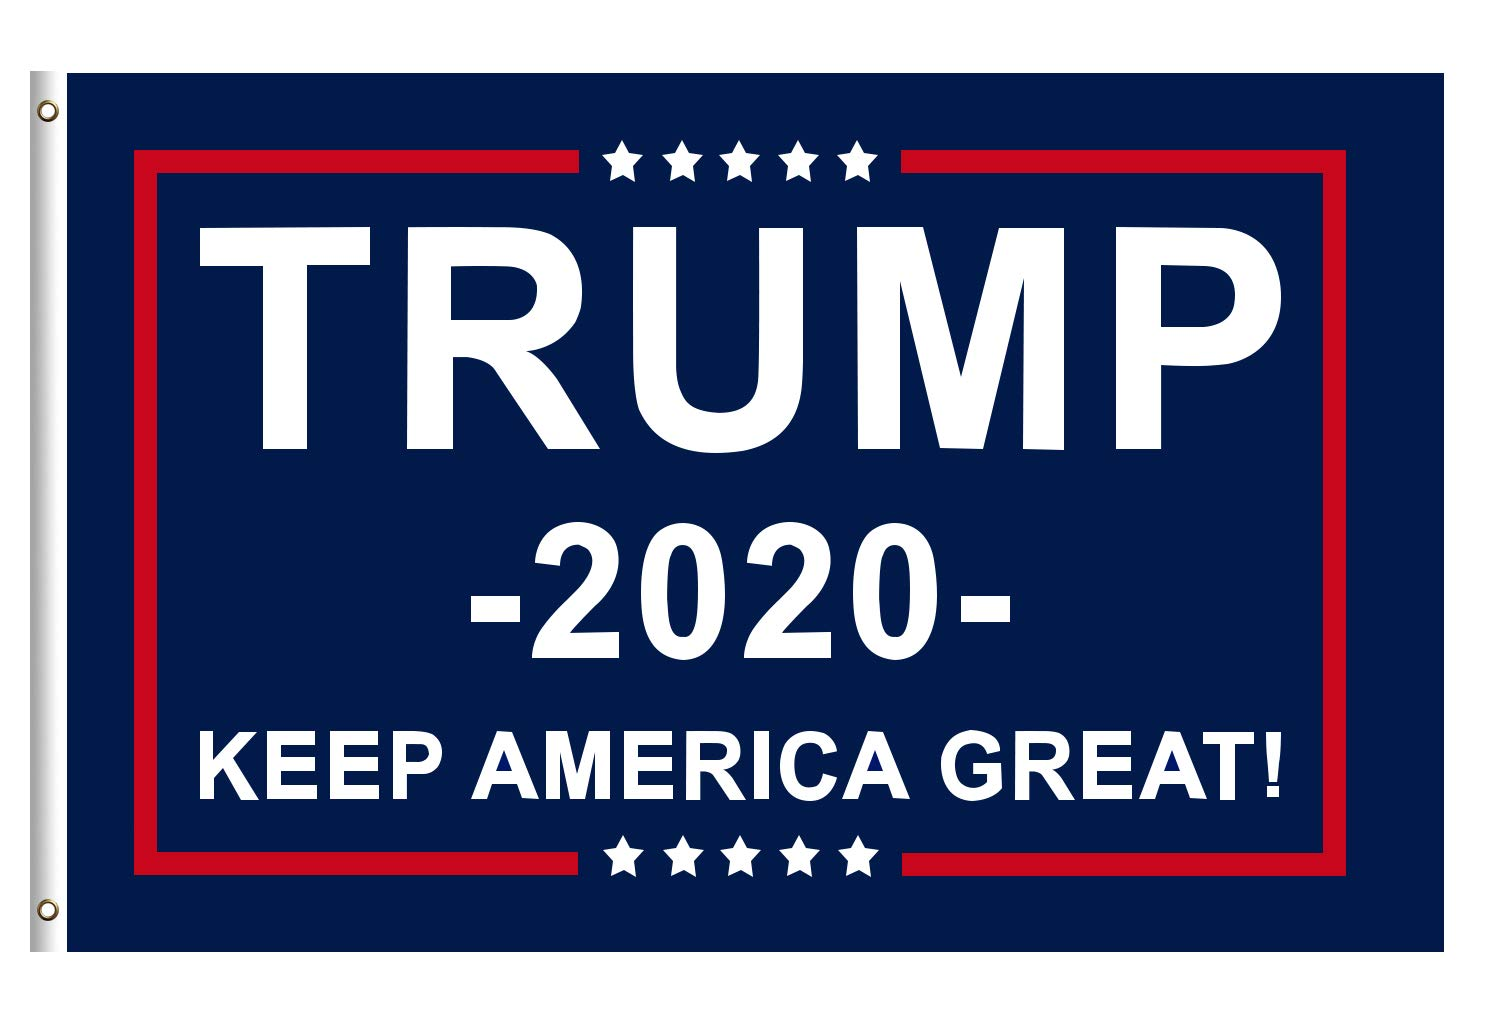 Donald Trump For President 2020 Keep America Great Flag Banner Go Trump 2020 Flag 3×5 Feet With Brass Grommets